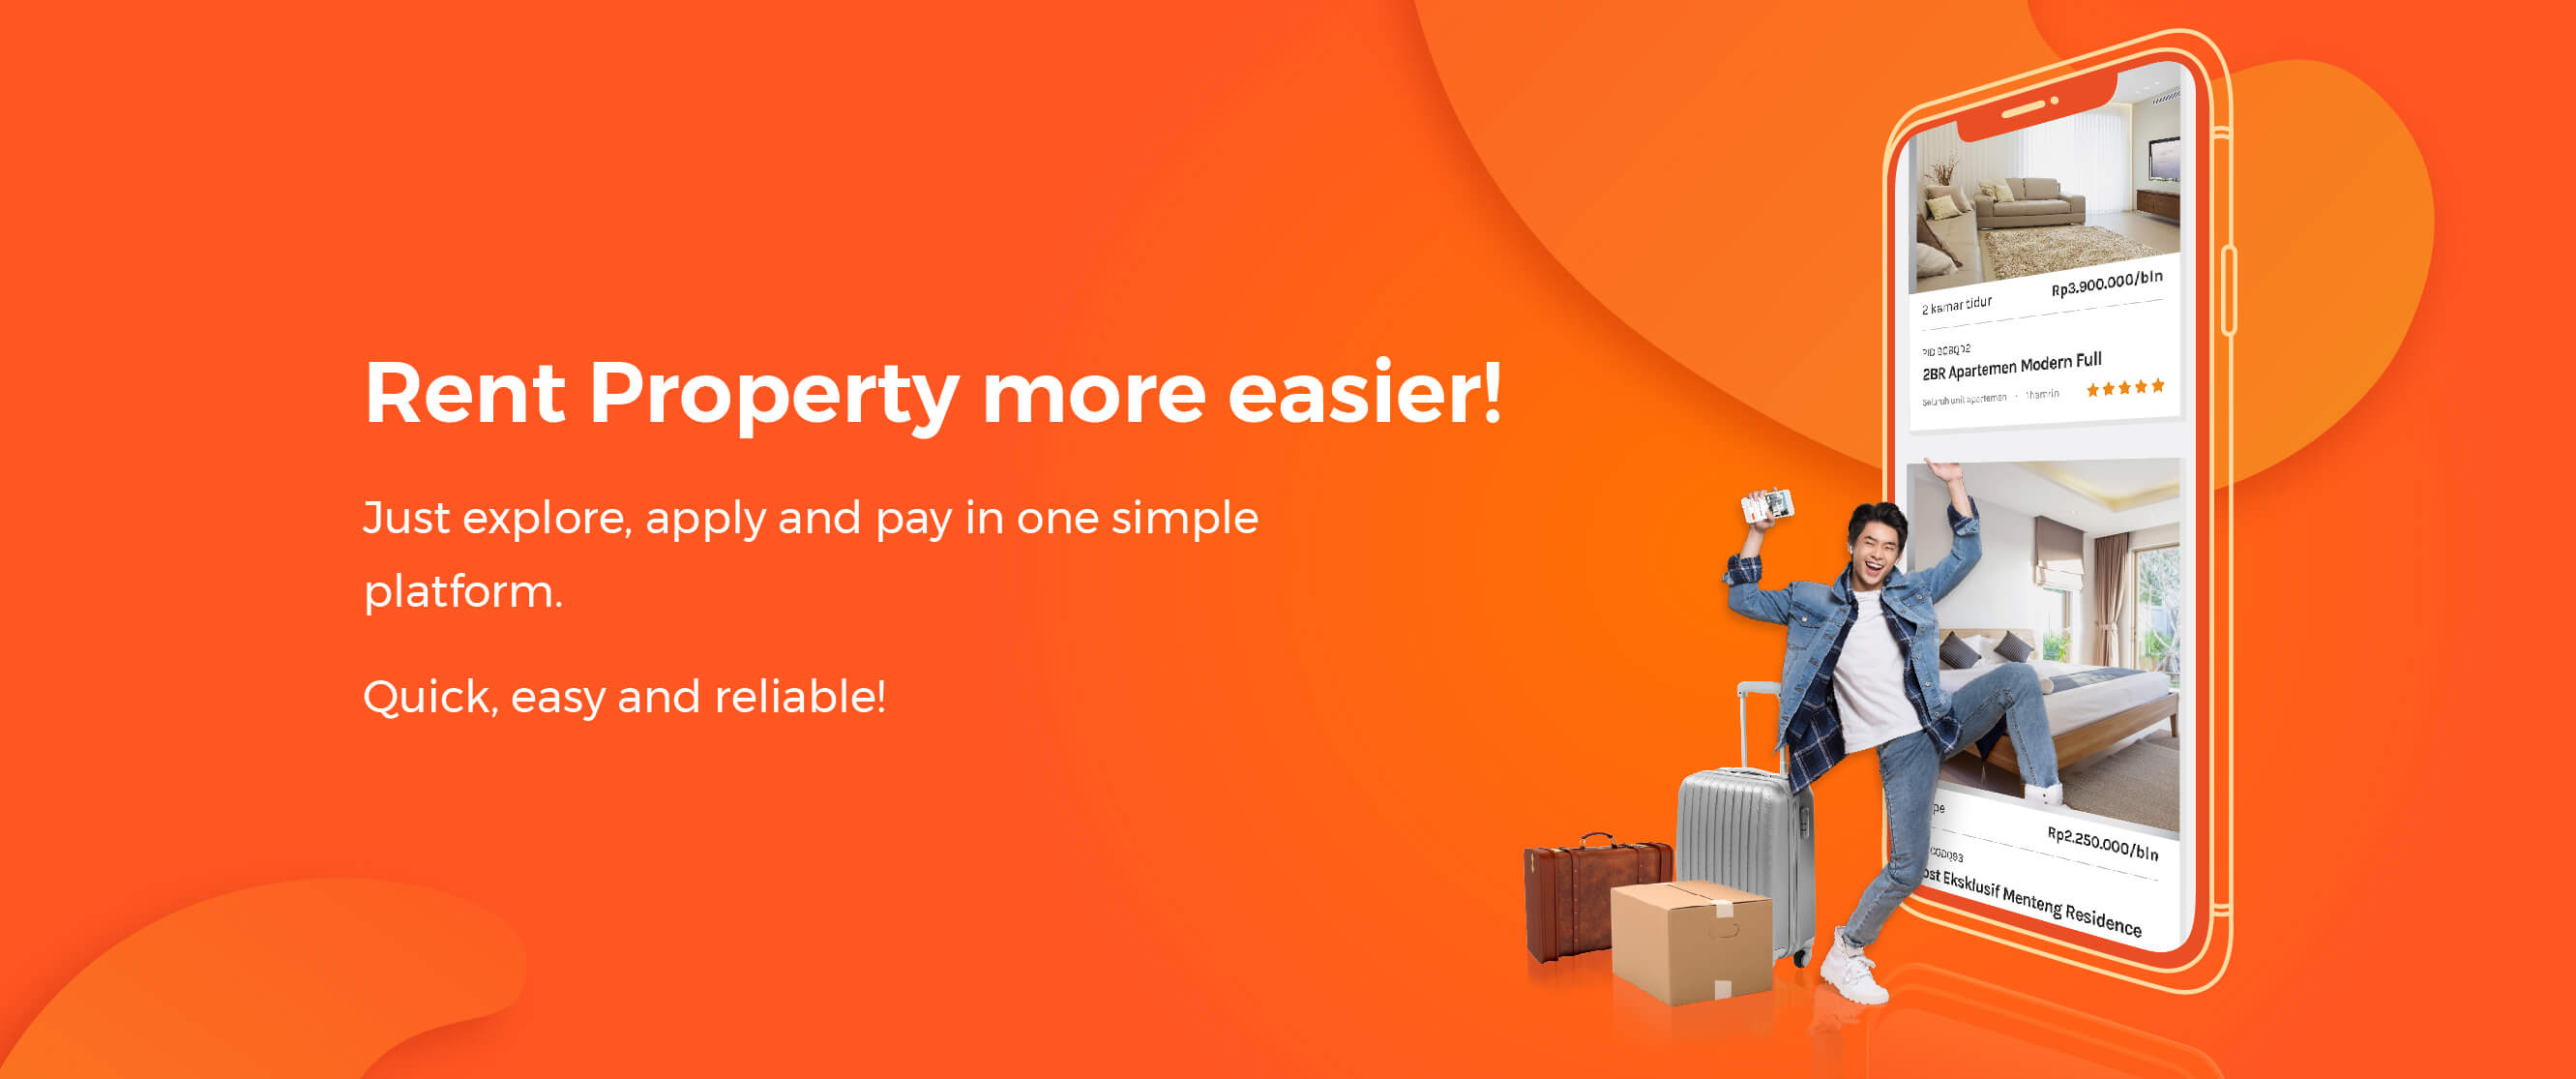 Rent property more easier